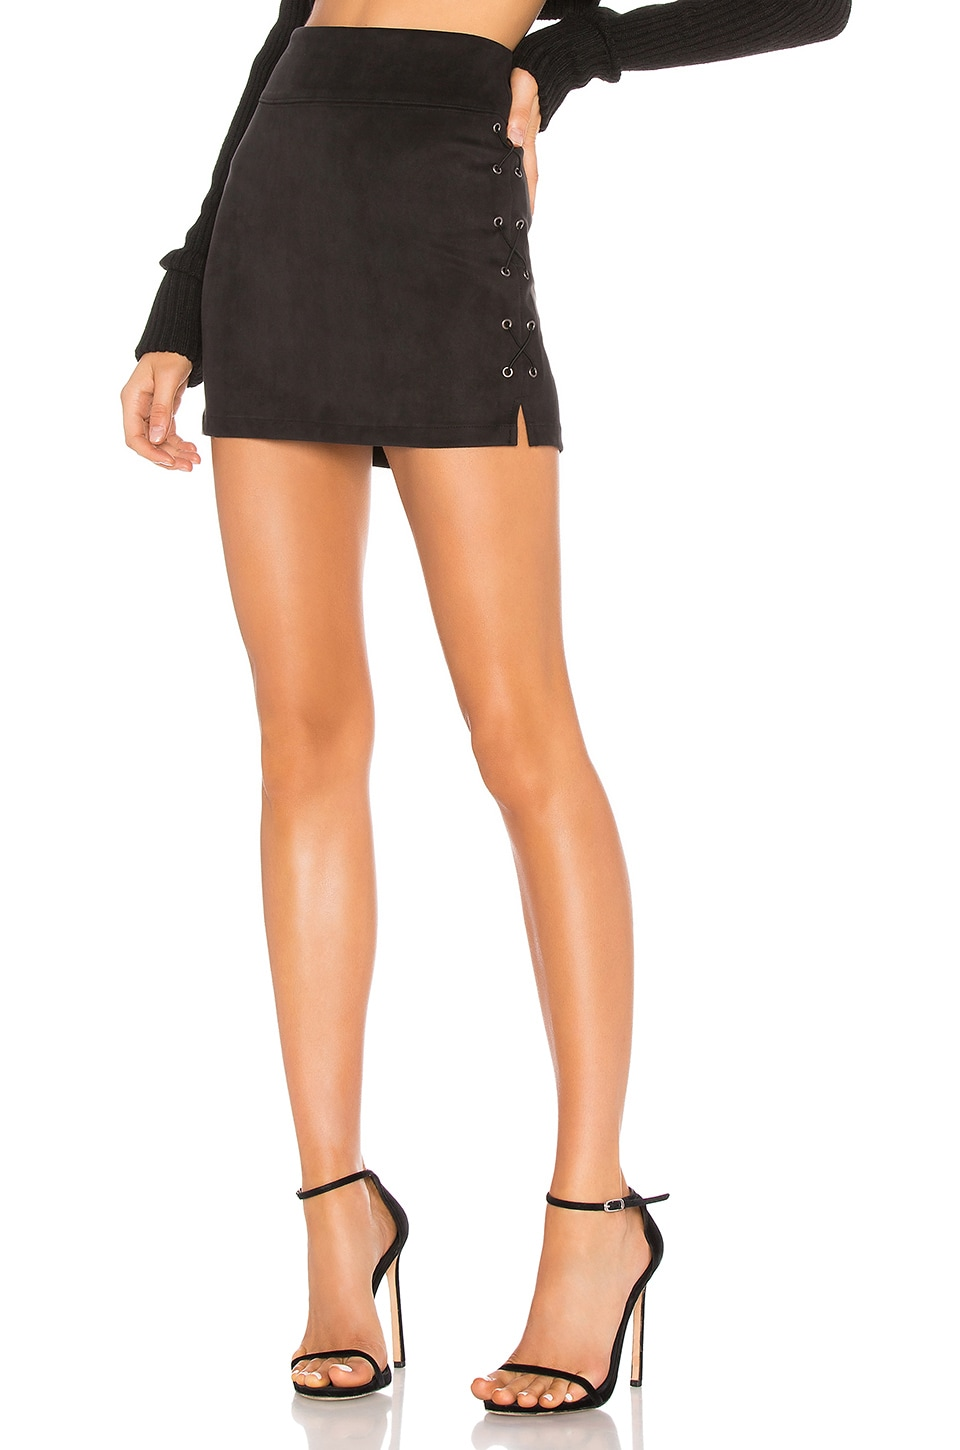 David Lerner Wax Cord Suede Lace Up Skirt in Black